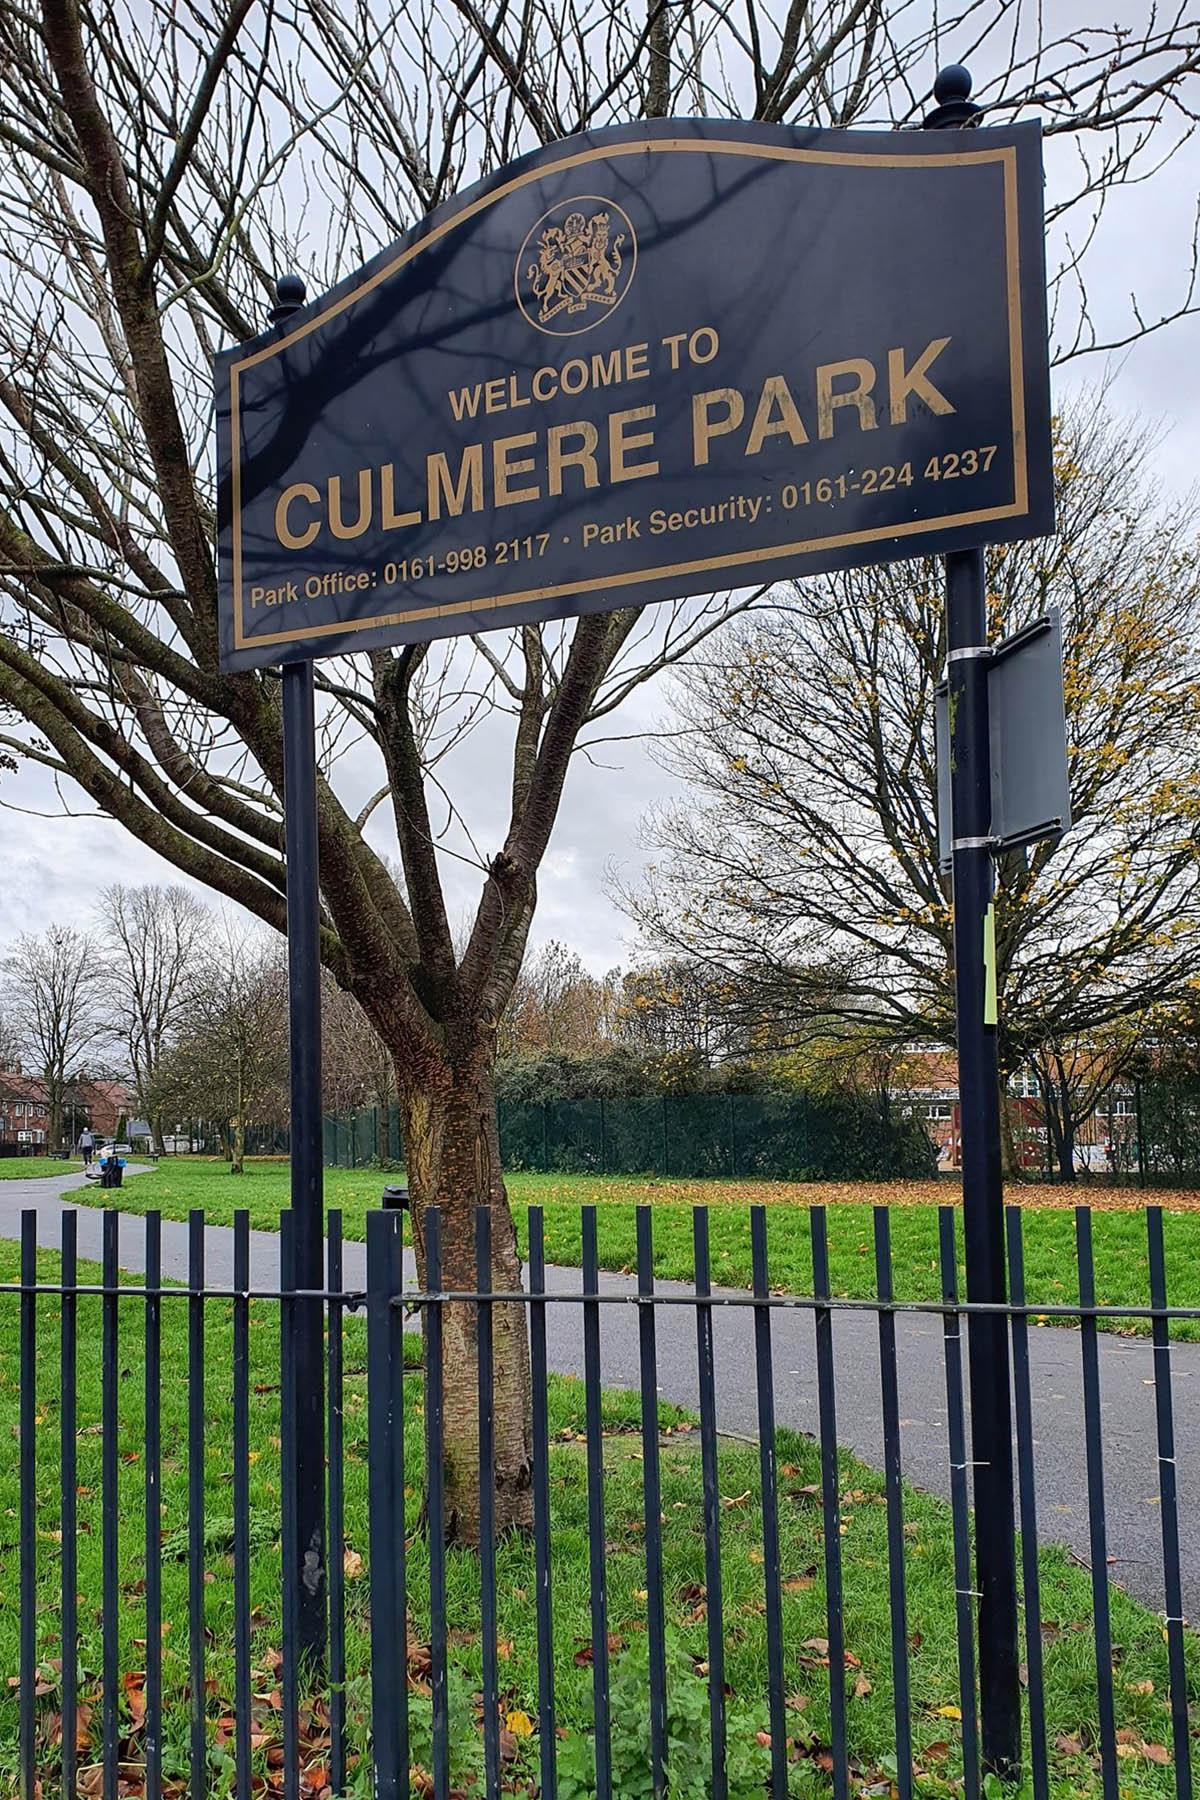 Culmere Park, Culmere Road, Woodhouse Park, M22 0EJ